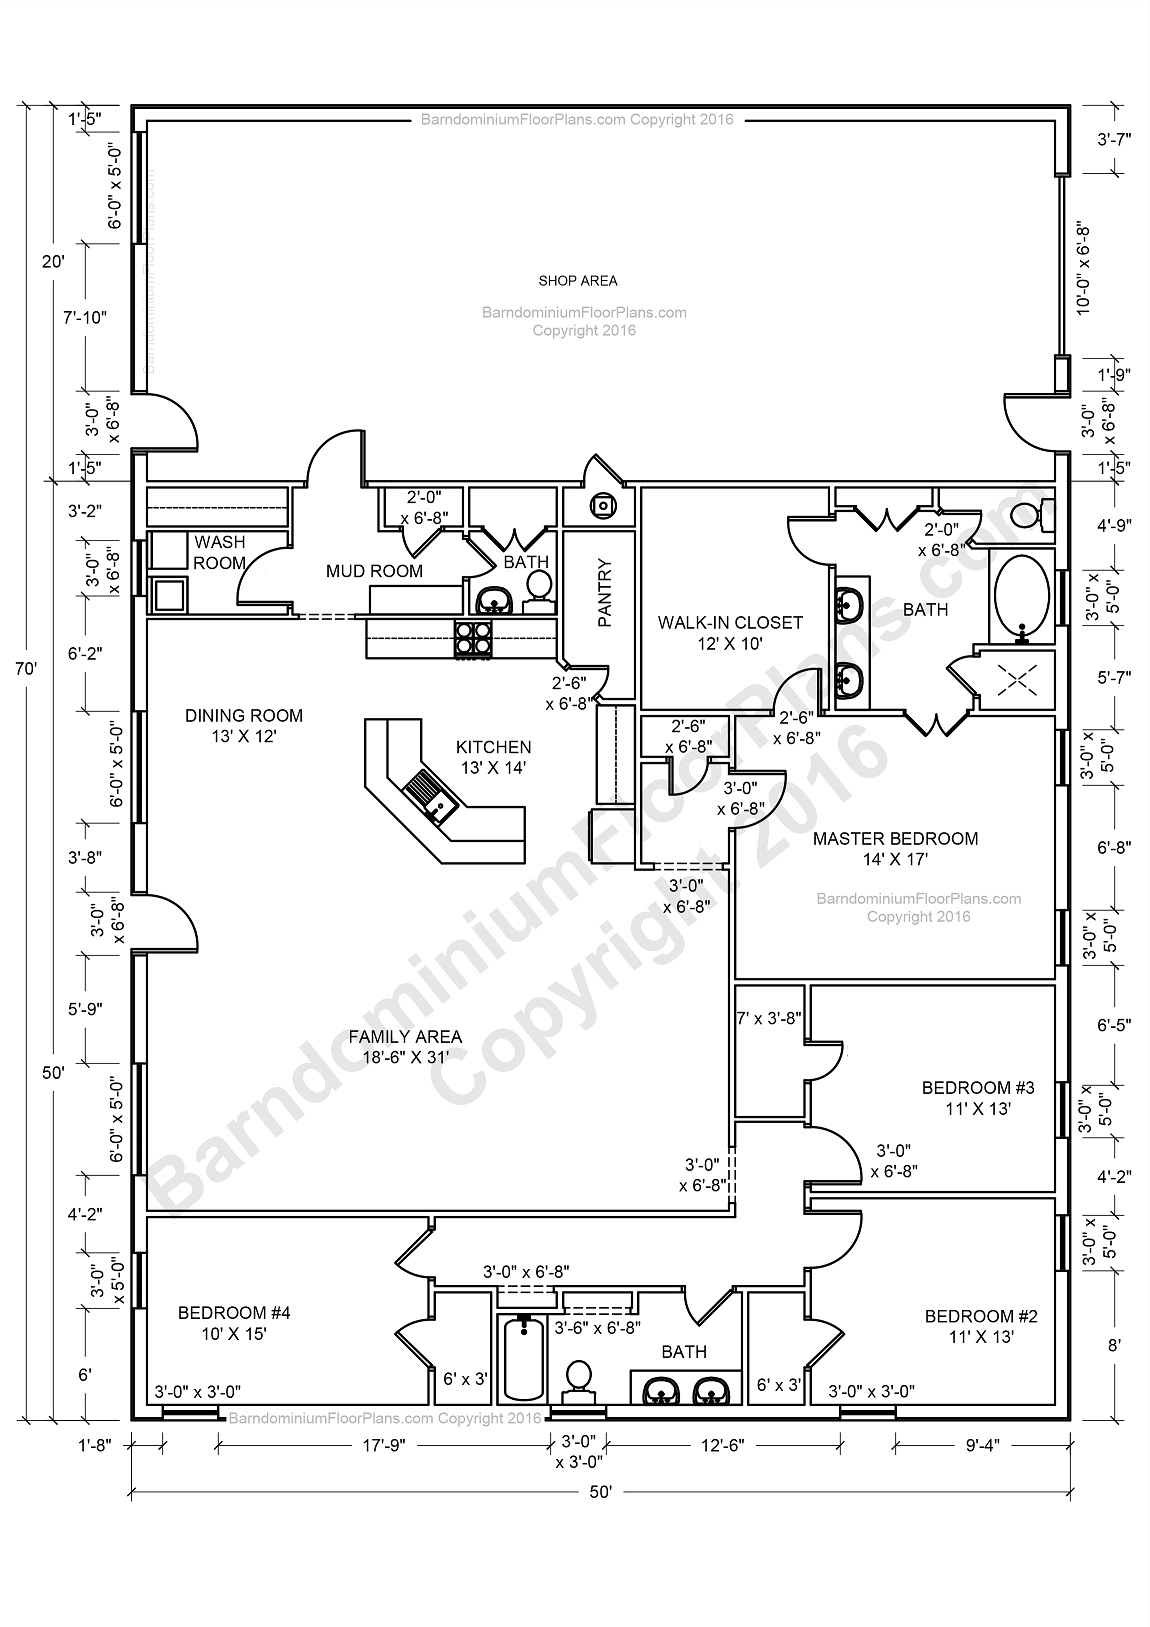 Barndominium floor plans barndominium floor plans 1 800 for Small pole barn house plans